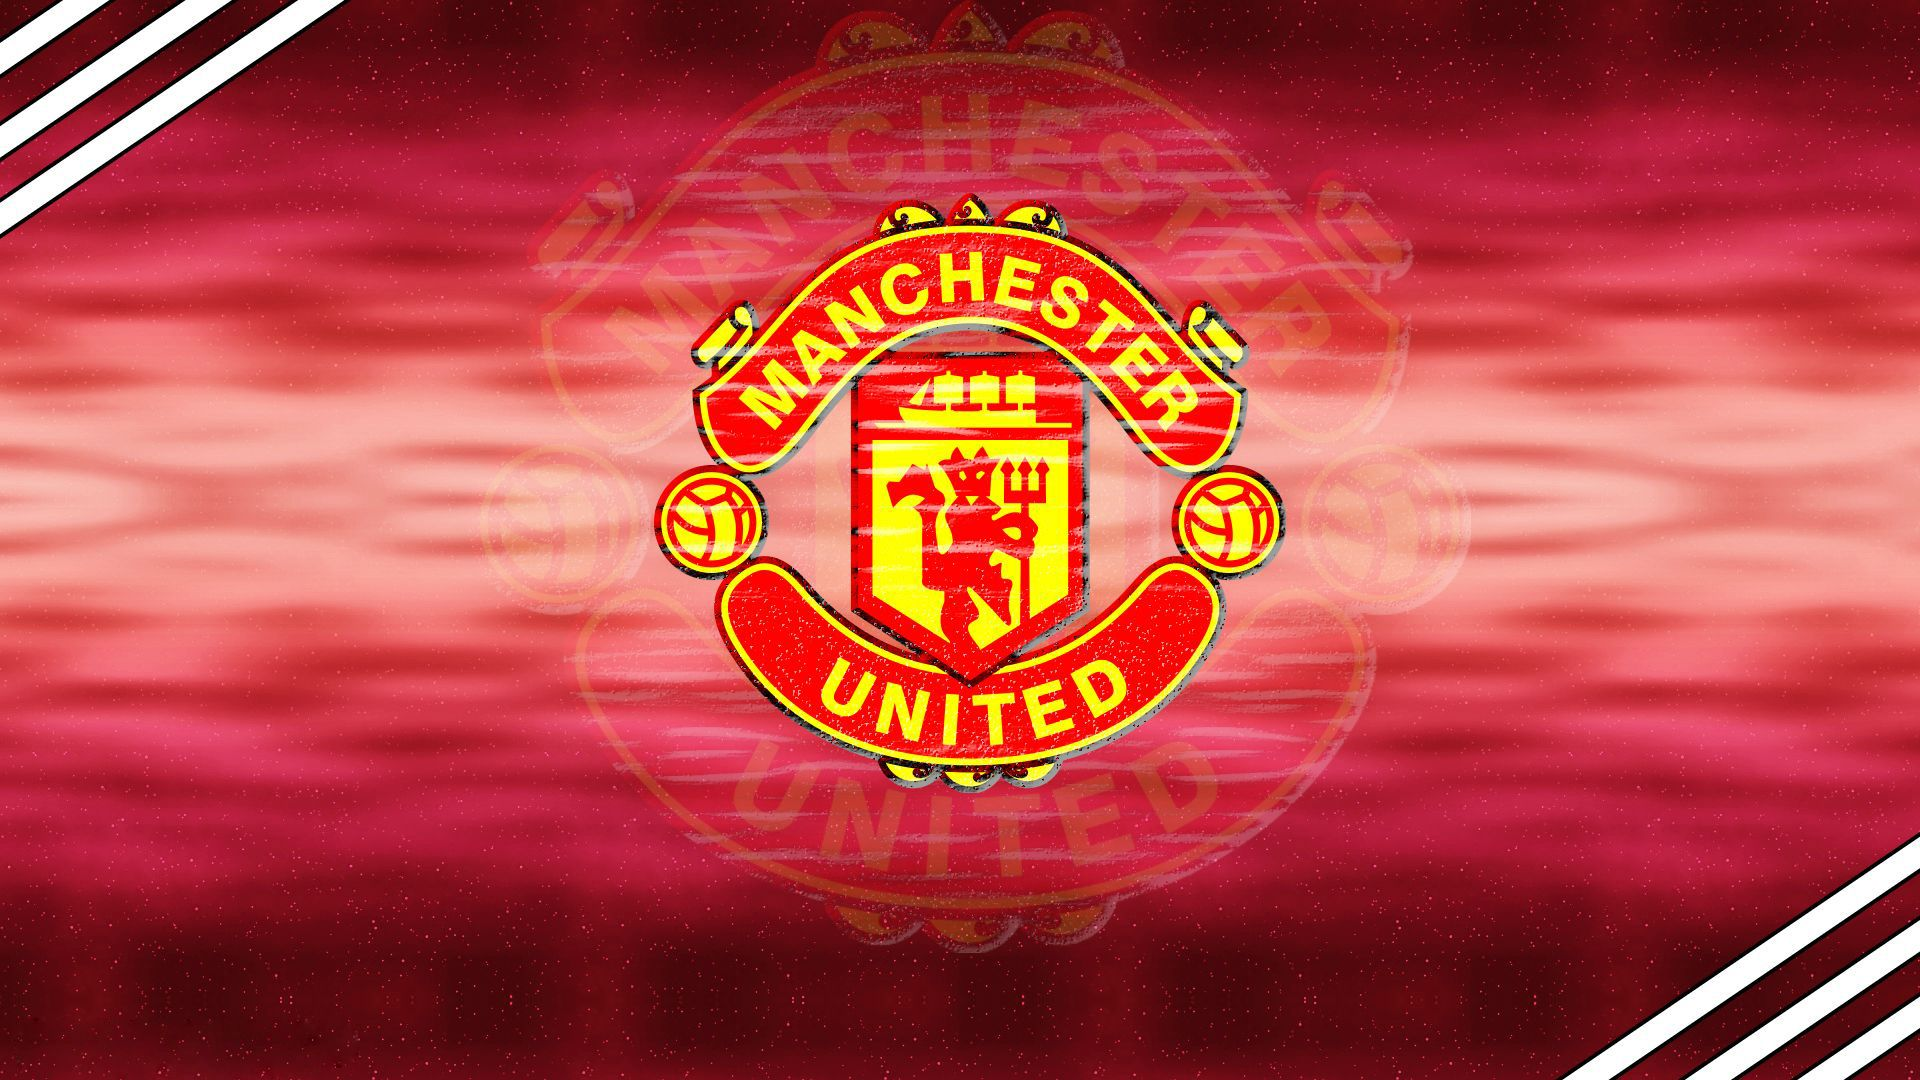 List of Best Manchester United Wallpapers Hd Wallpaper